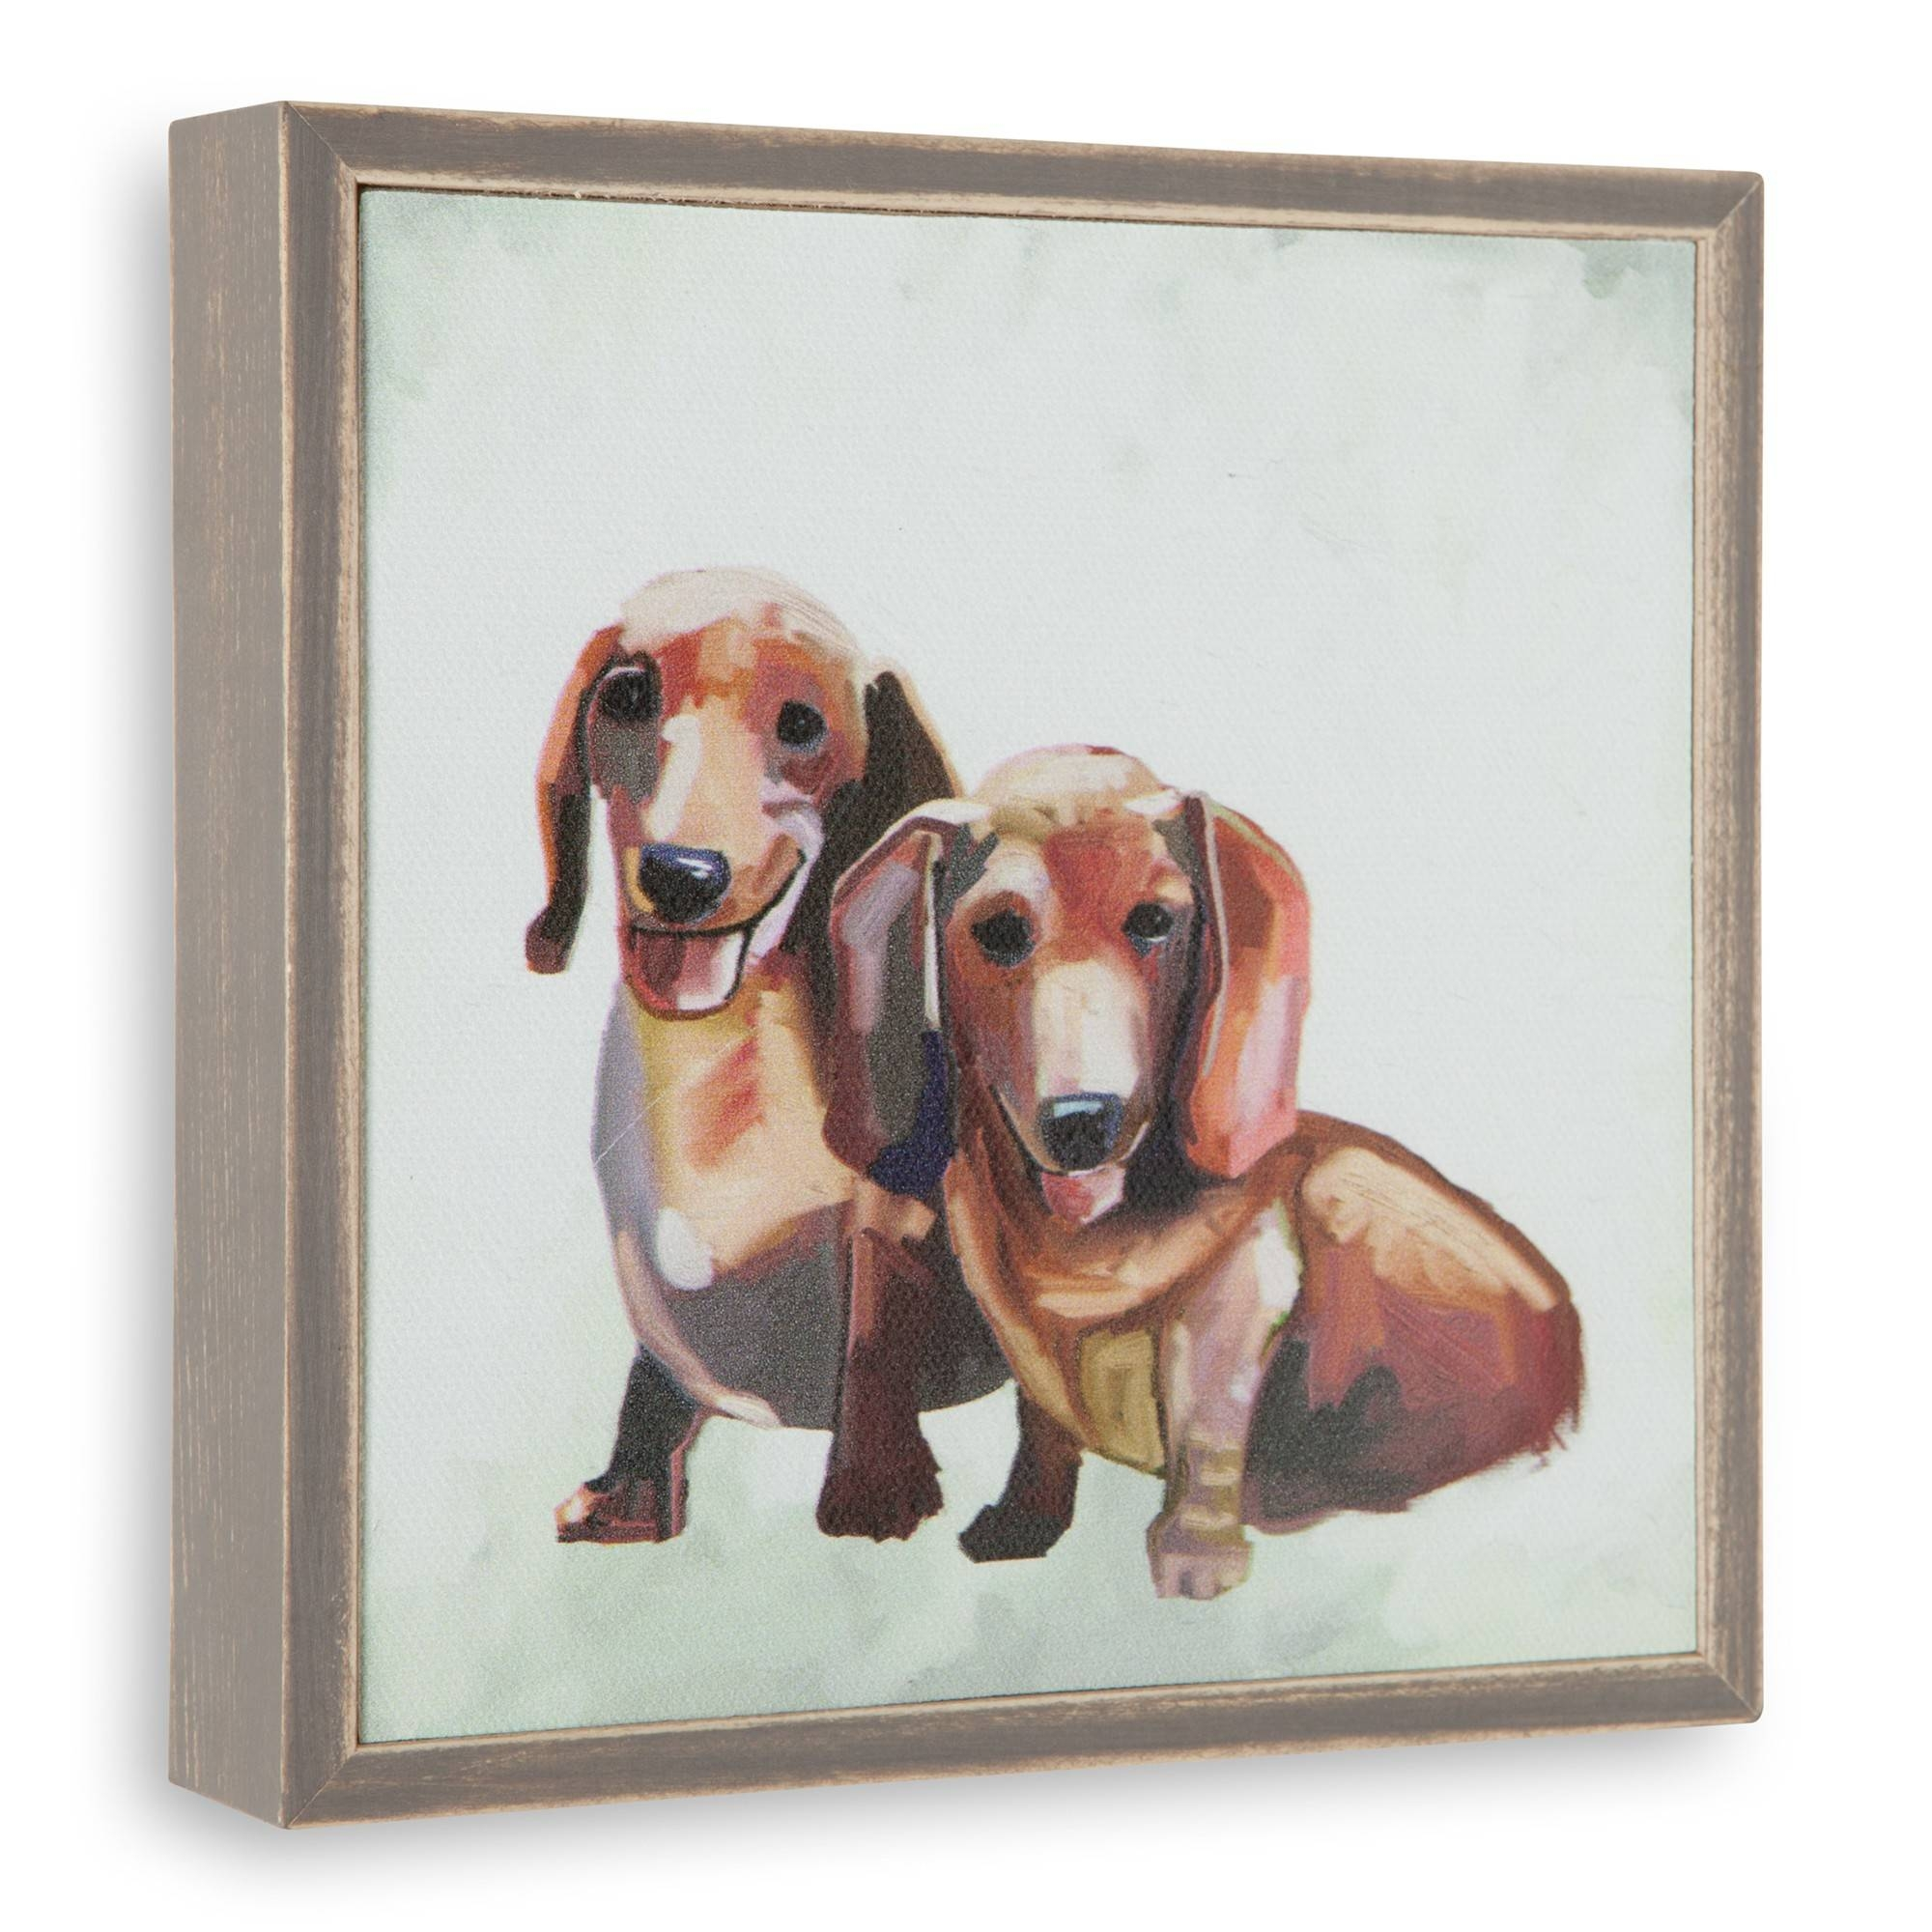 Dachshund Duo Mini Framed Canvas Wall Art | Sturbridge Yankee Workshop Throughout 2017 Dachshund Wall Art (View 8 of 22)